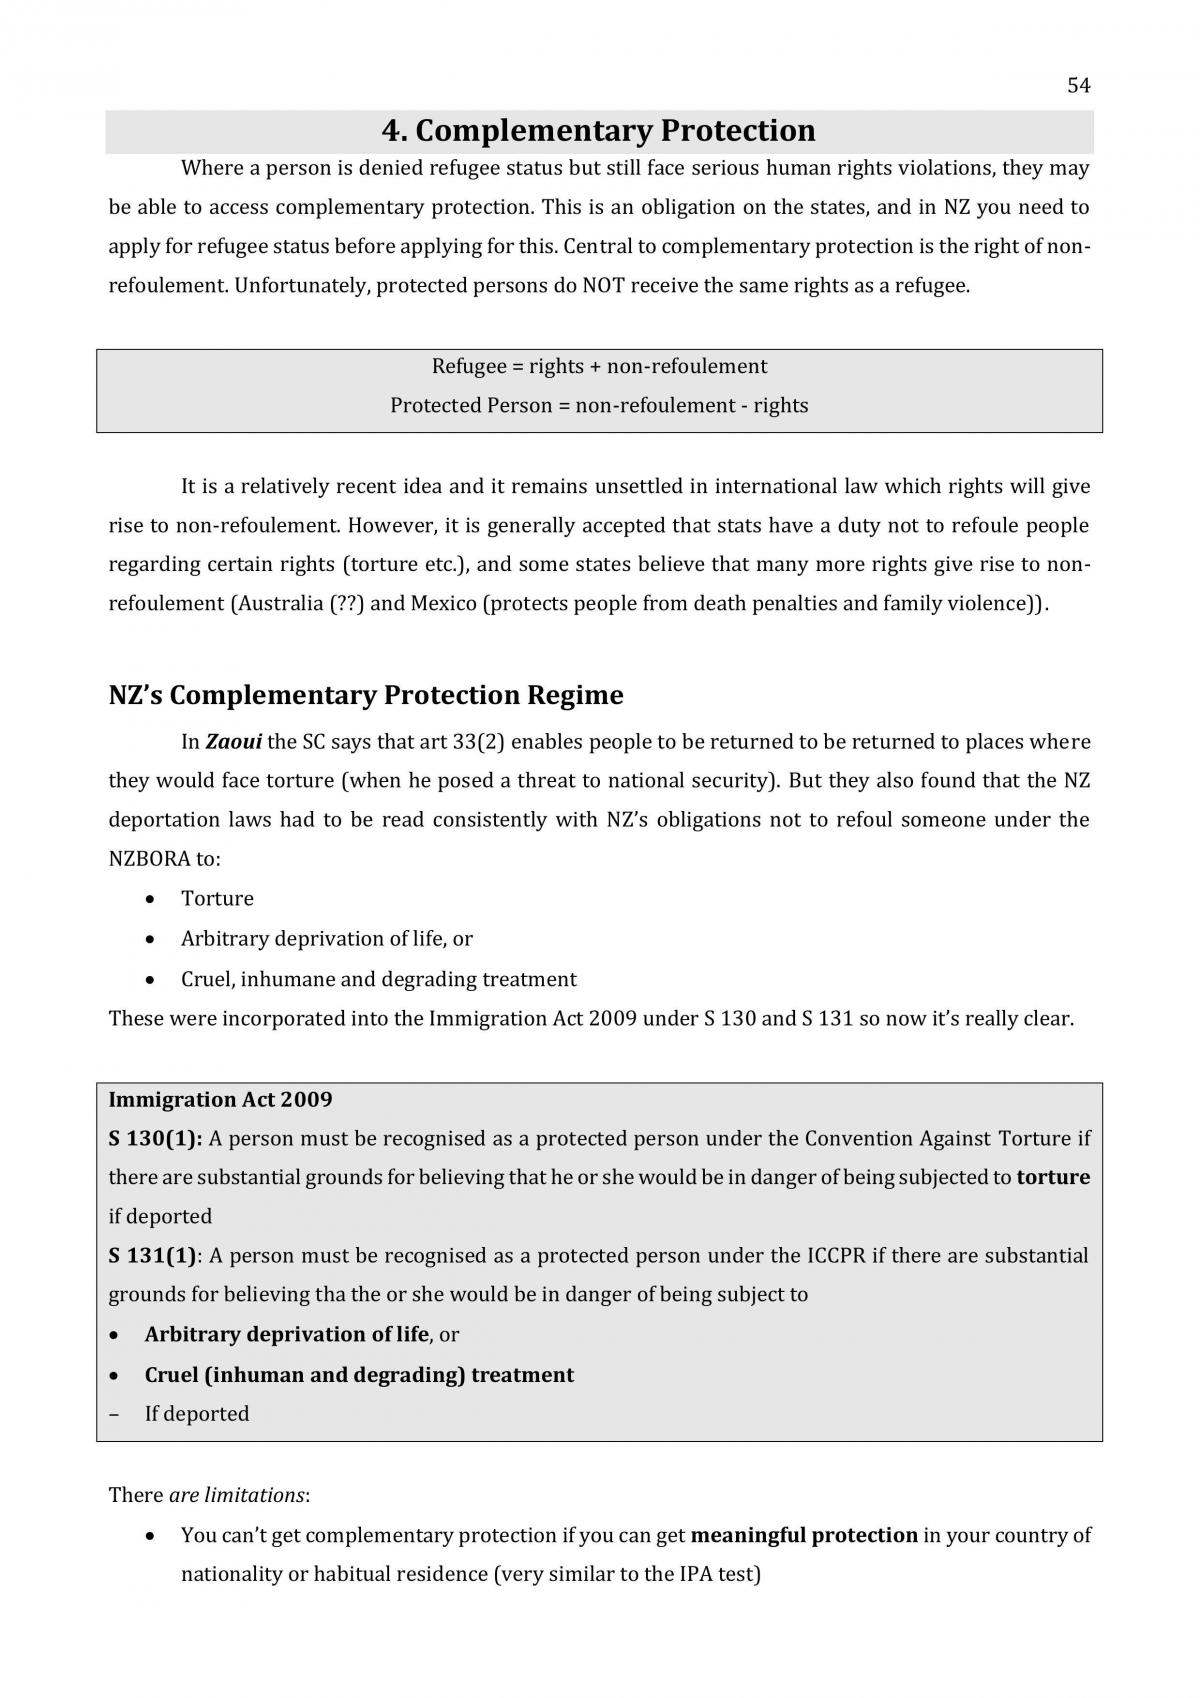 Refugee Law Full Course Notes - Page 55